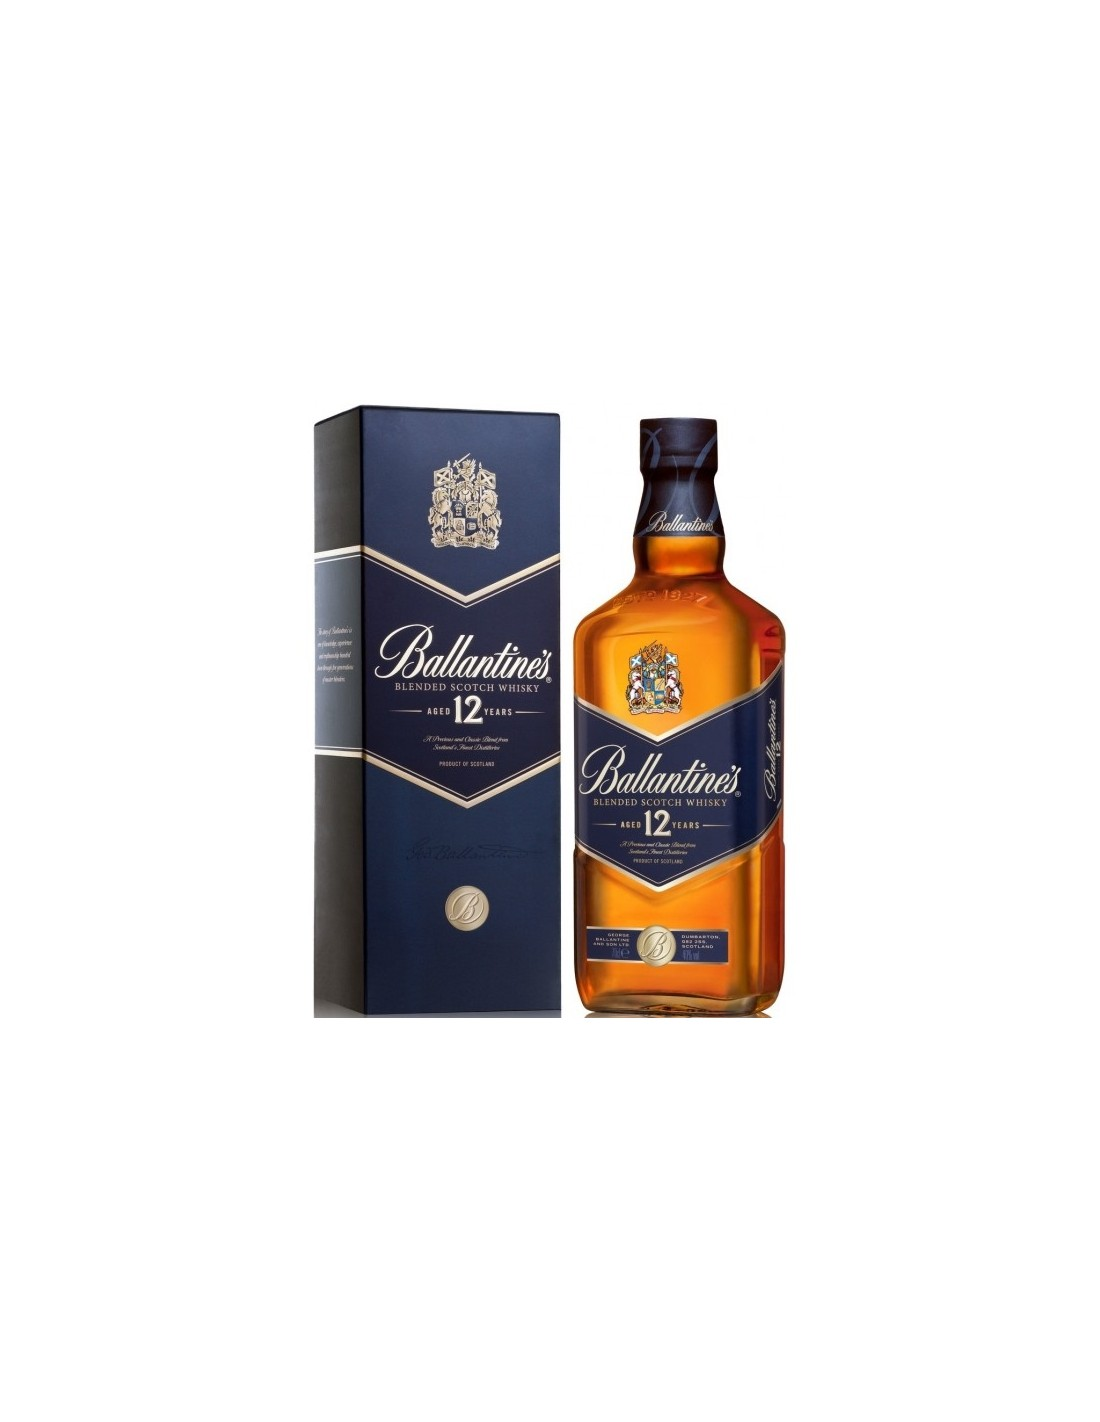 Blended Whisky Ballantine's, 12 ani, 40% alc., 0.7L, Scotia